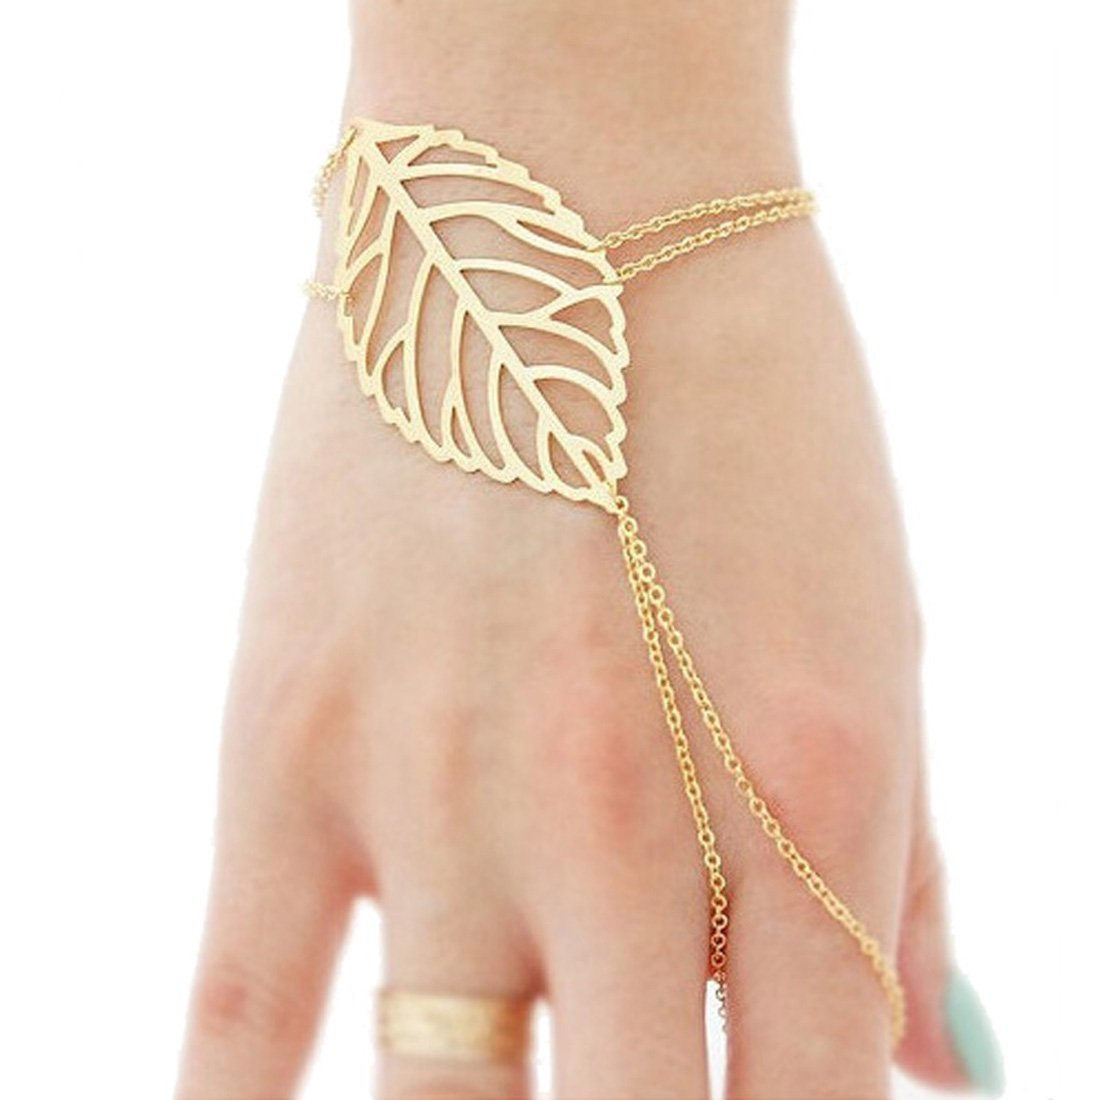 Amazon.com : Bestpriceam® Fashion Women Hollow Leaves Finger Ring ...